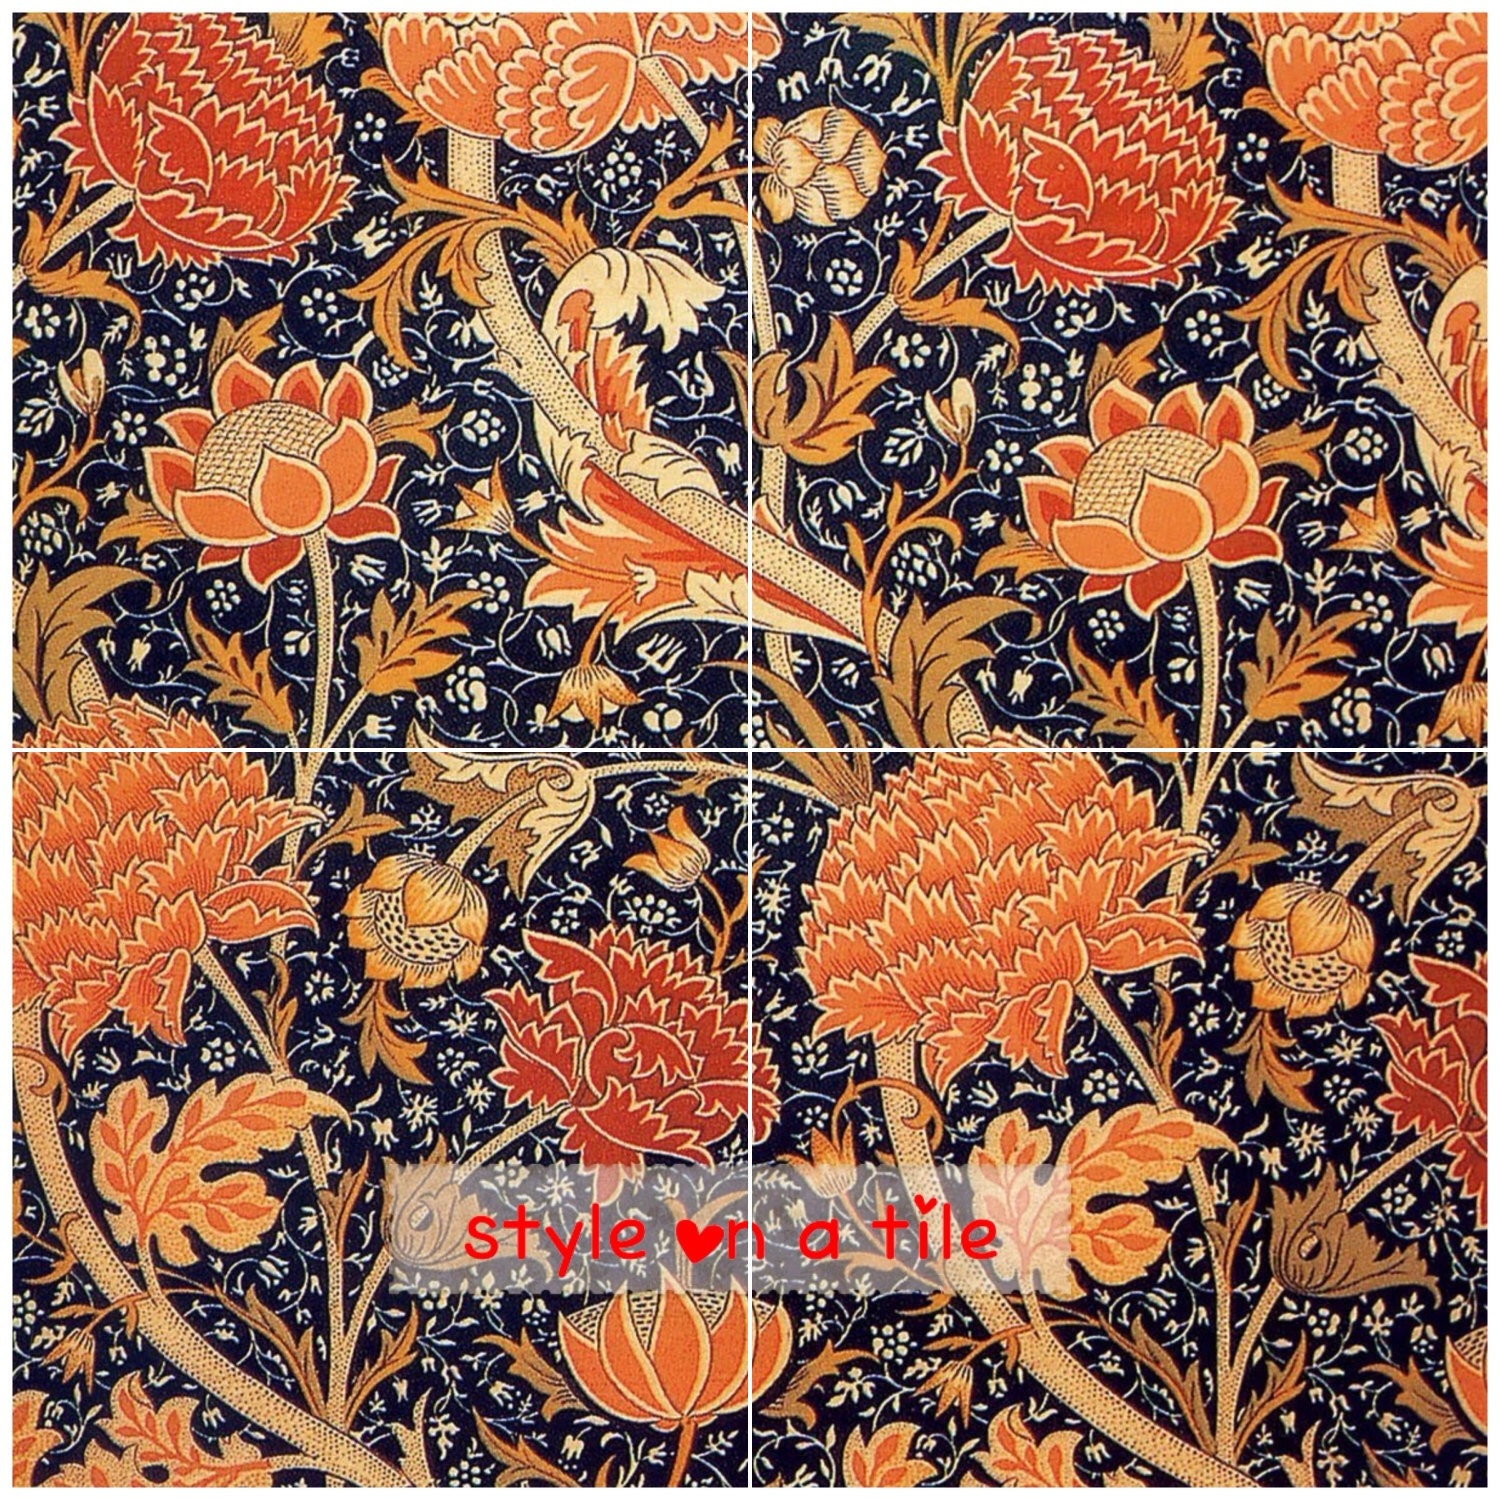 Lovely william morris floral cray flower 4 x 6 or 152mm ceramic tile lovely william morris floral cray flower 4 x 6 or 152mm ceramic tile mural mosaic wall art splash back dailygadgetfo Choice Image